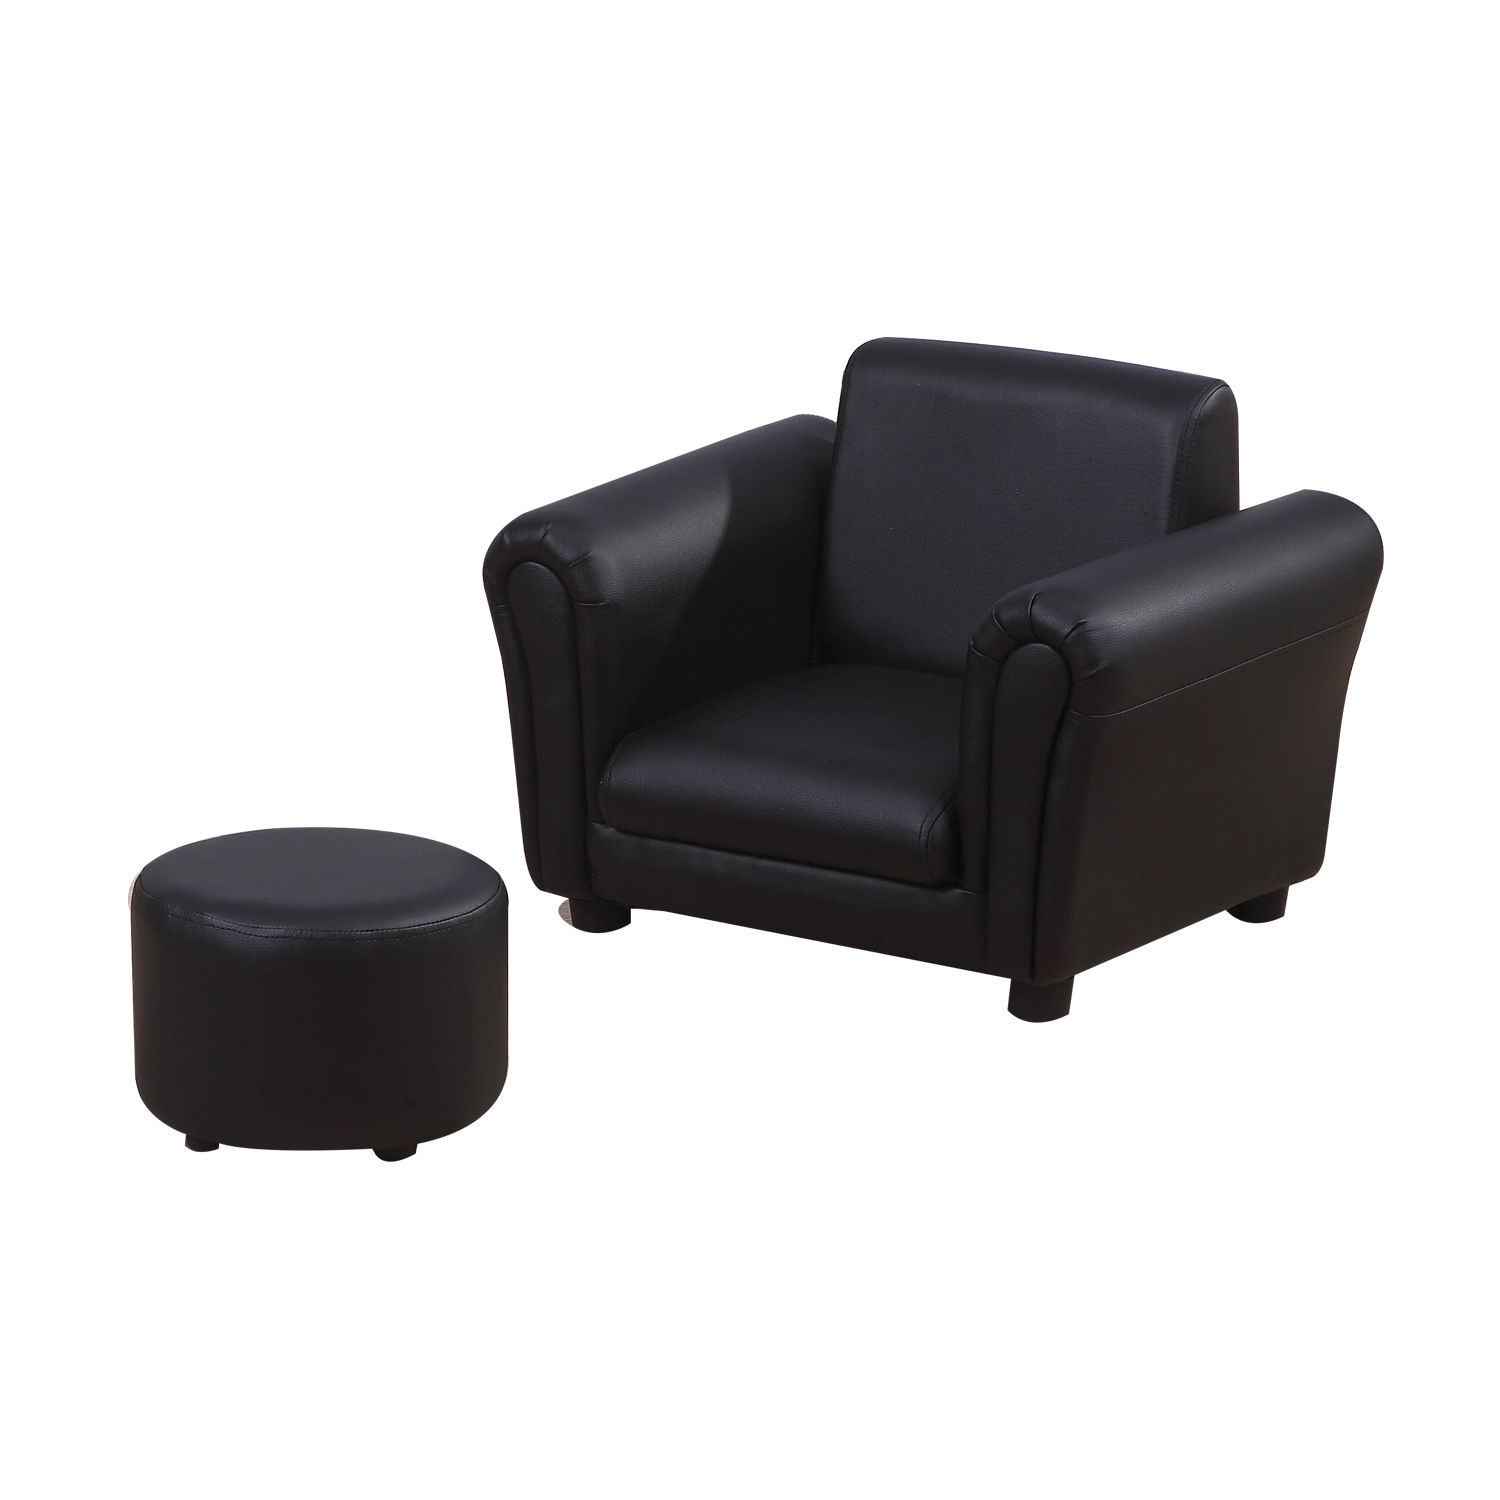 Kids-Sofa-Children-Chair-Seat-Armchair-W-Footstool-Playroom-Bedroom-Black-Pink thumbnail 7